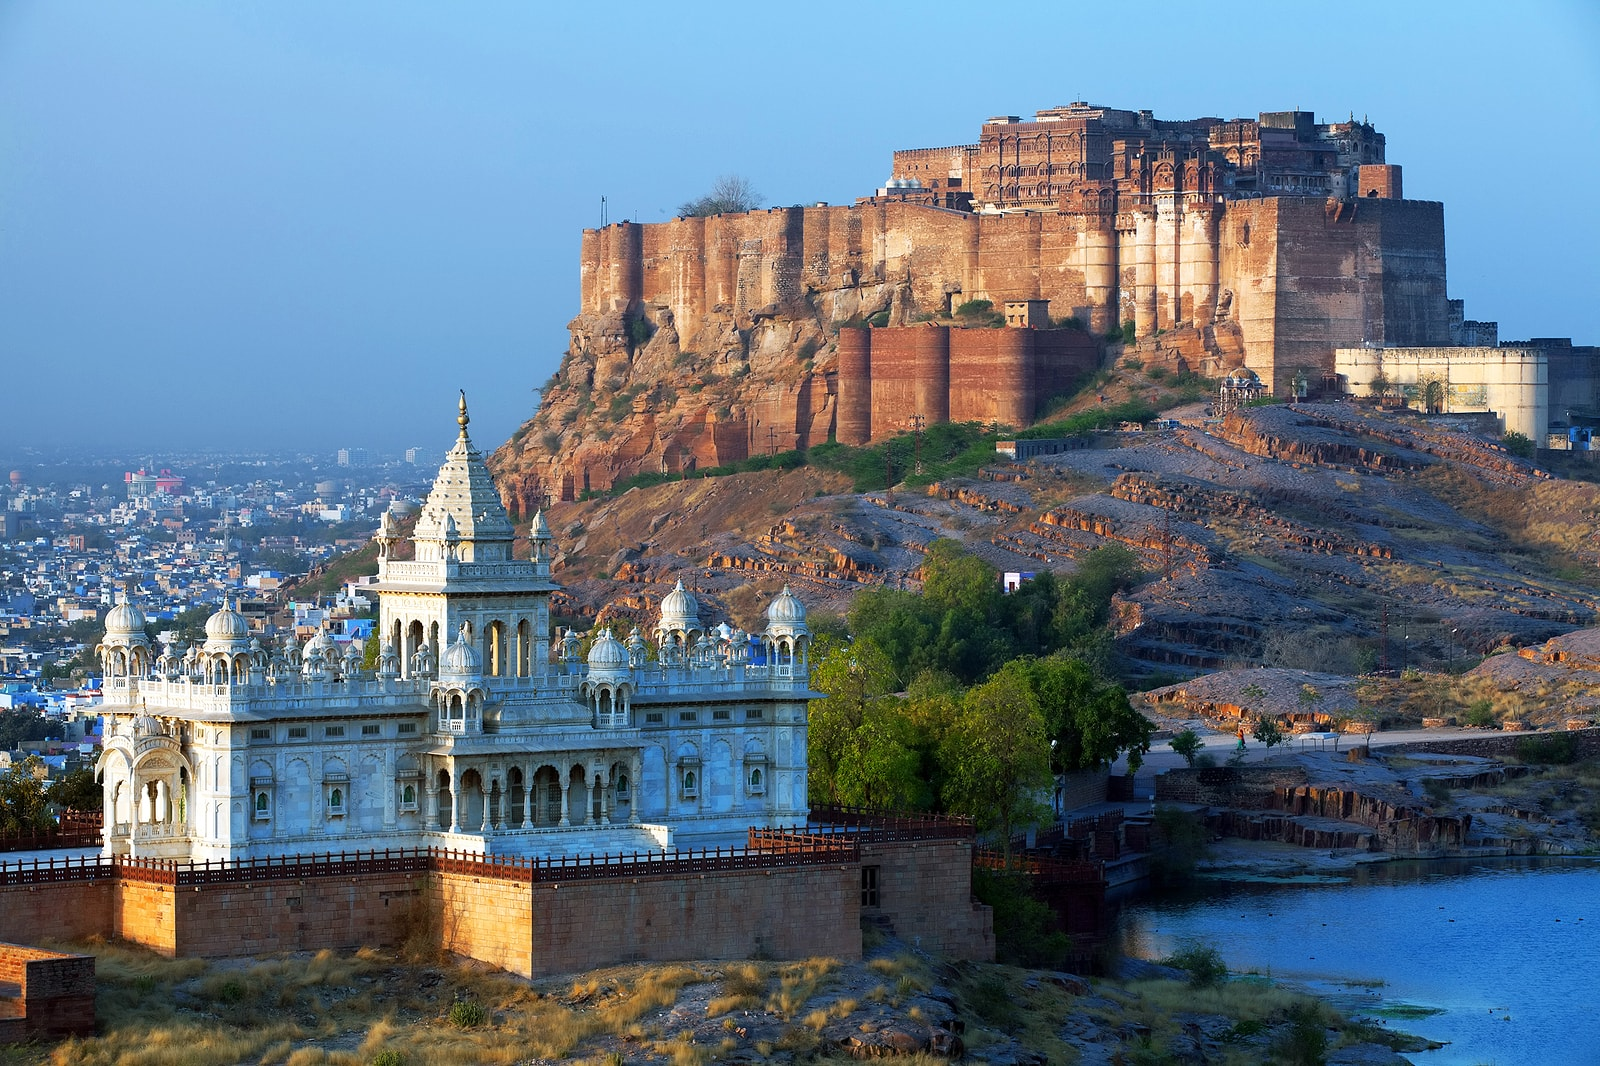 Mehrangarh Fort and Jaswant Thada Mausoleum, Jodhpur